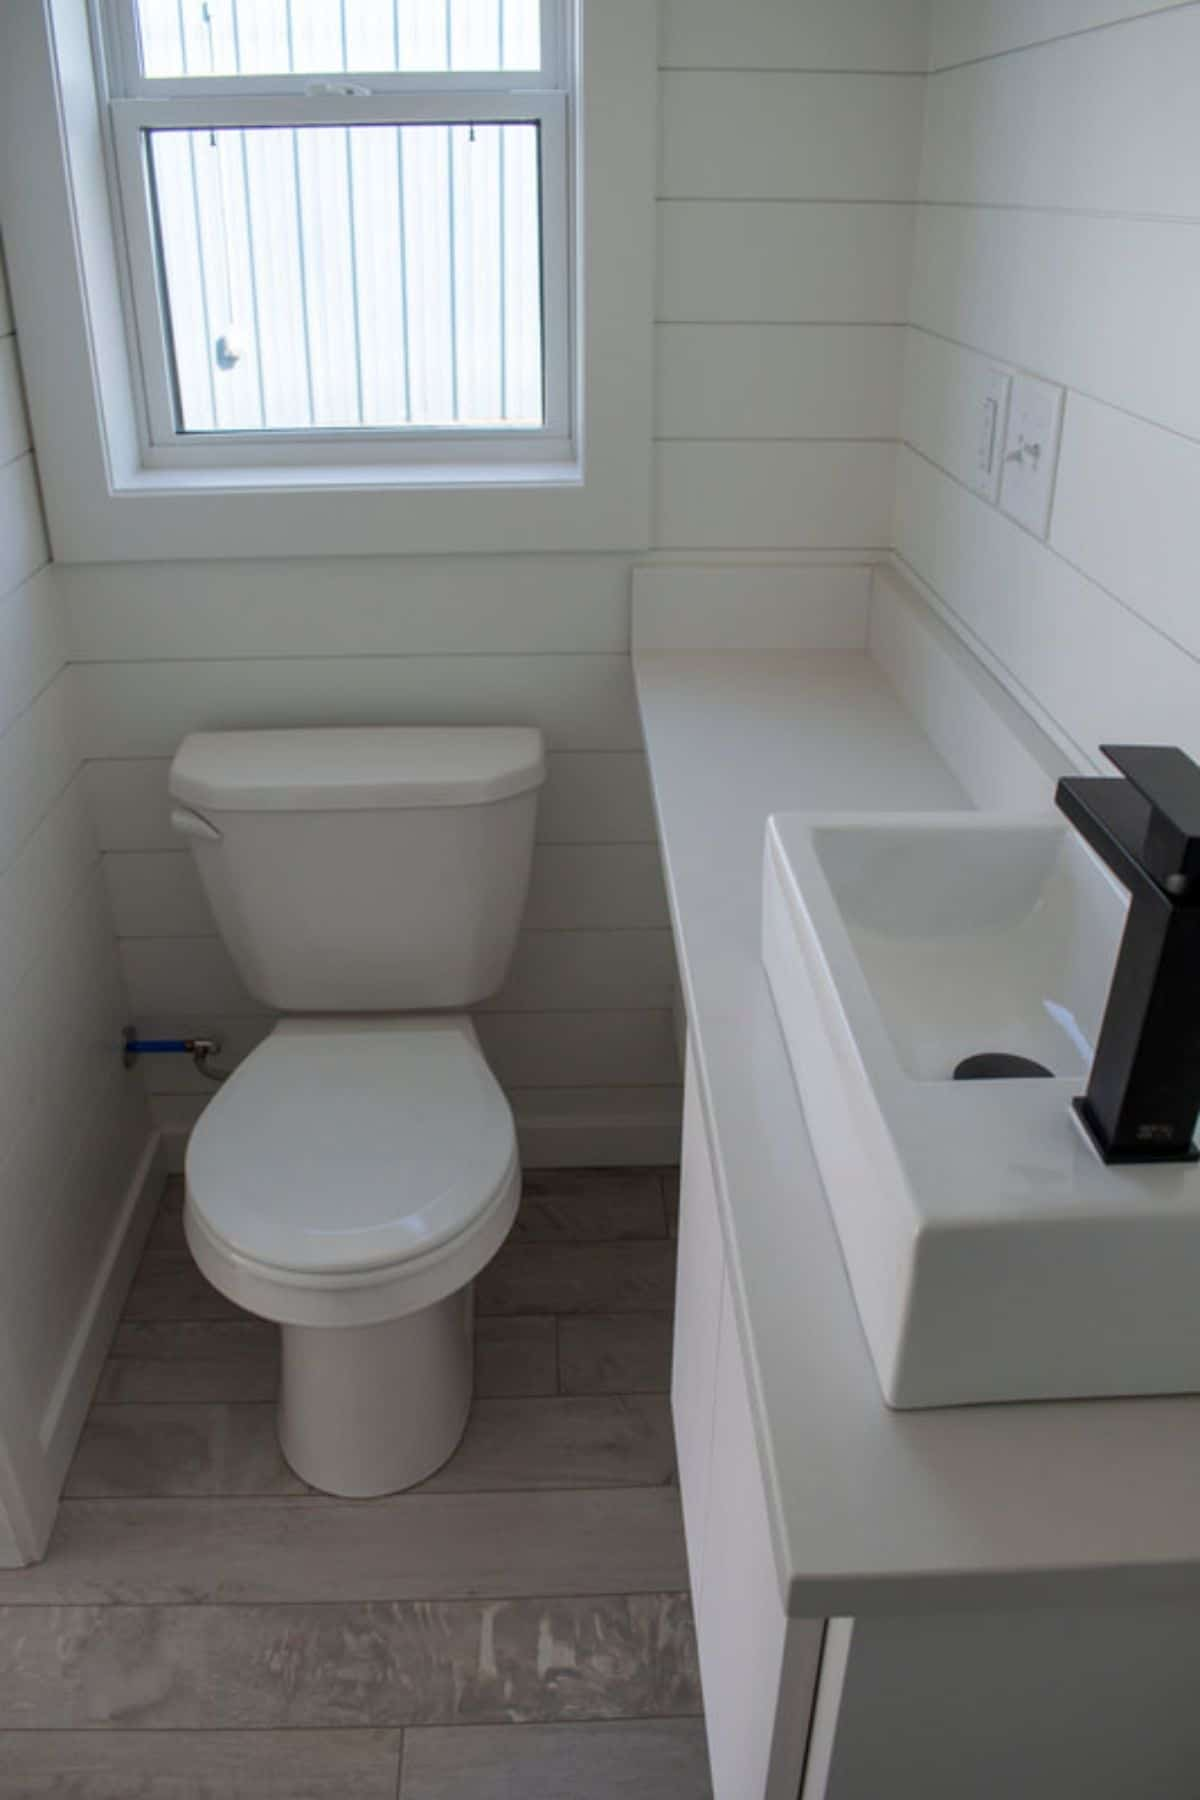 Flush toilet on wood floors next to white acbinet and sink